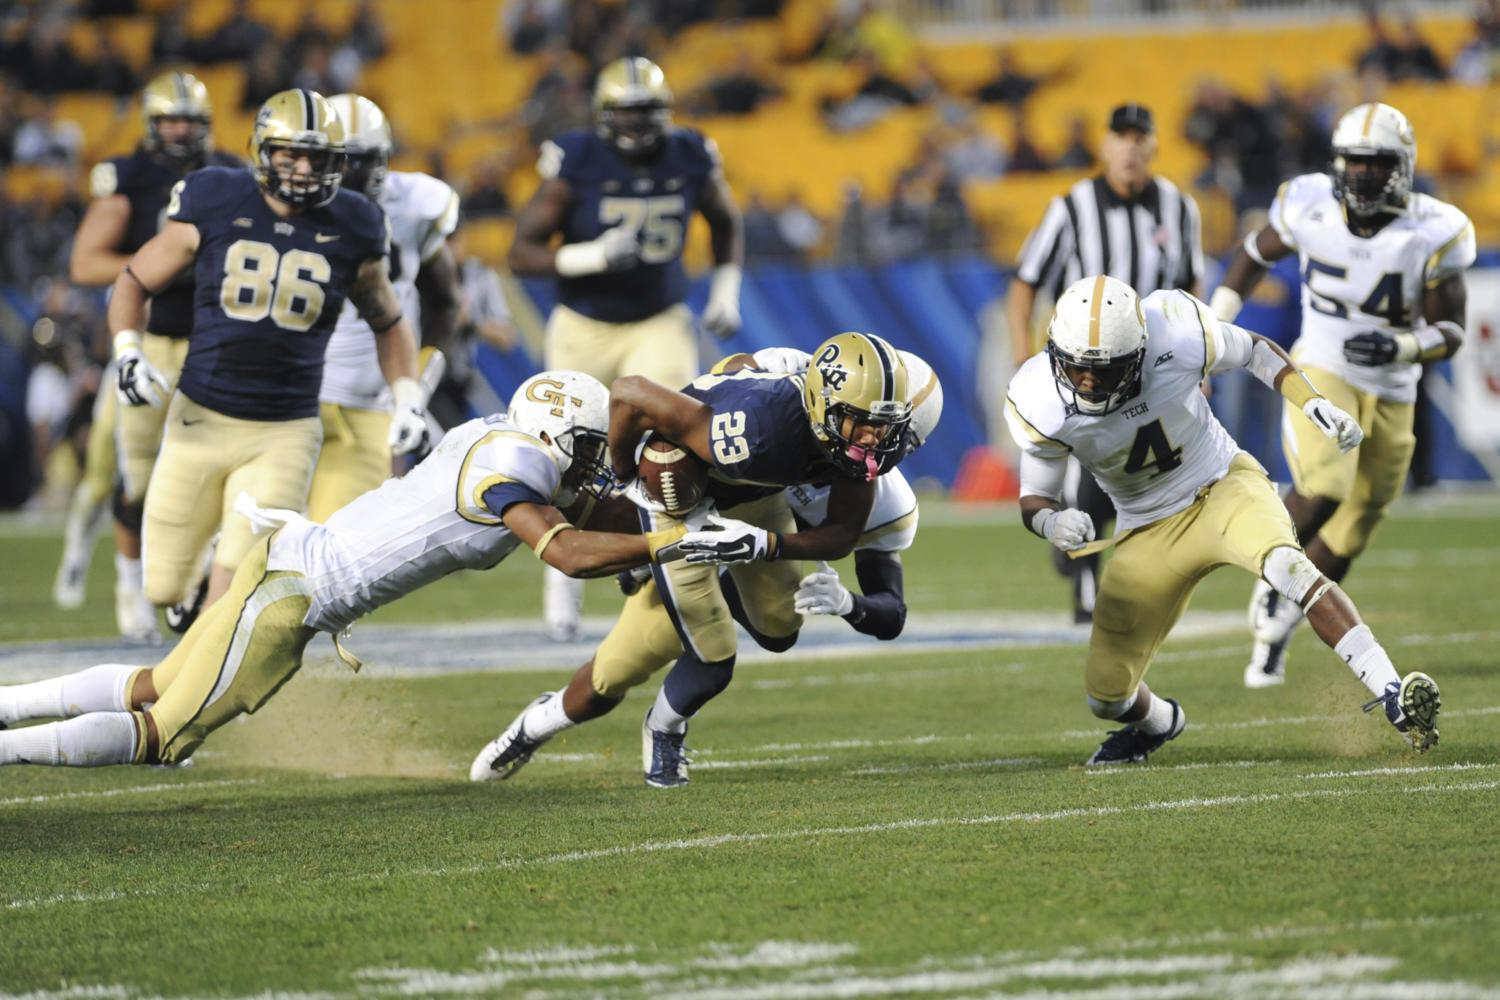 Pitt suffered a 56-28 loss at the 2014 homecoming game against Georgia Tech. (TPN File Photo)